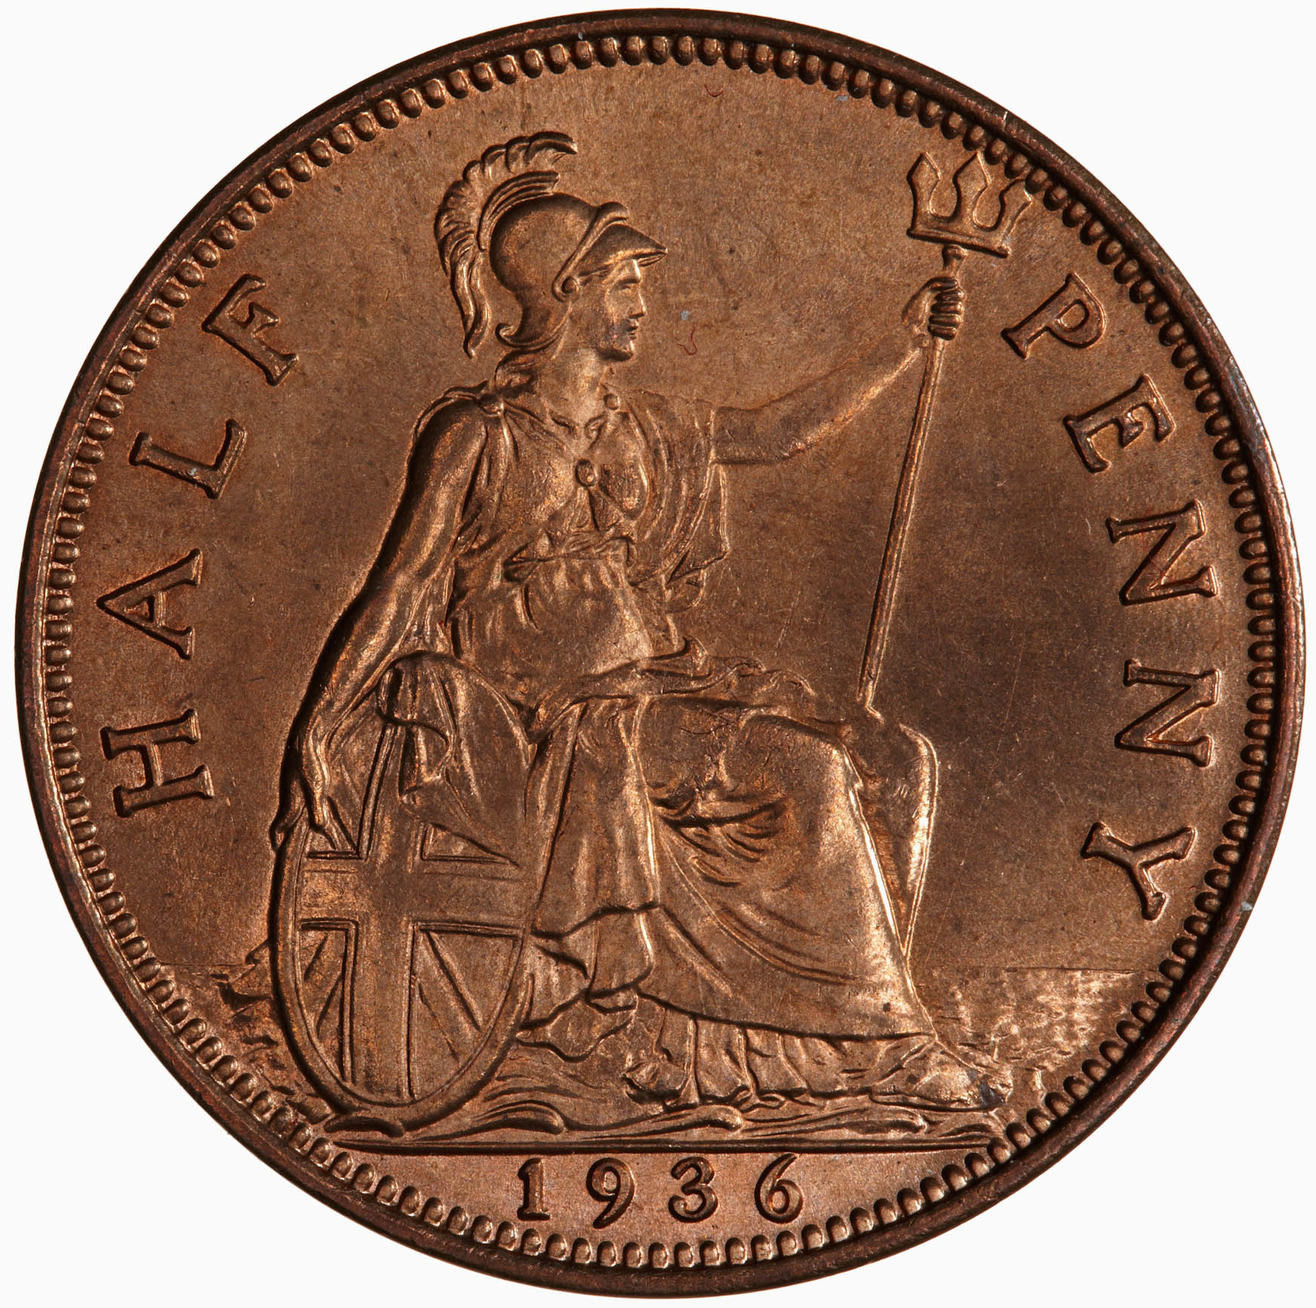 Halfpenny 1936: Photo Coin - Halfpenny, George V, Great Britain, 1936